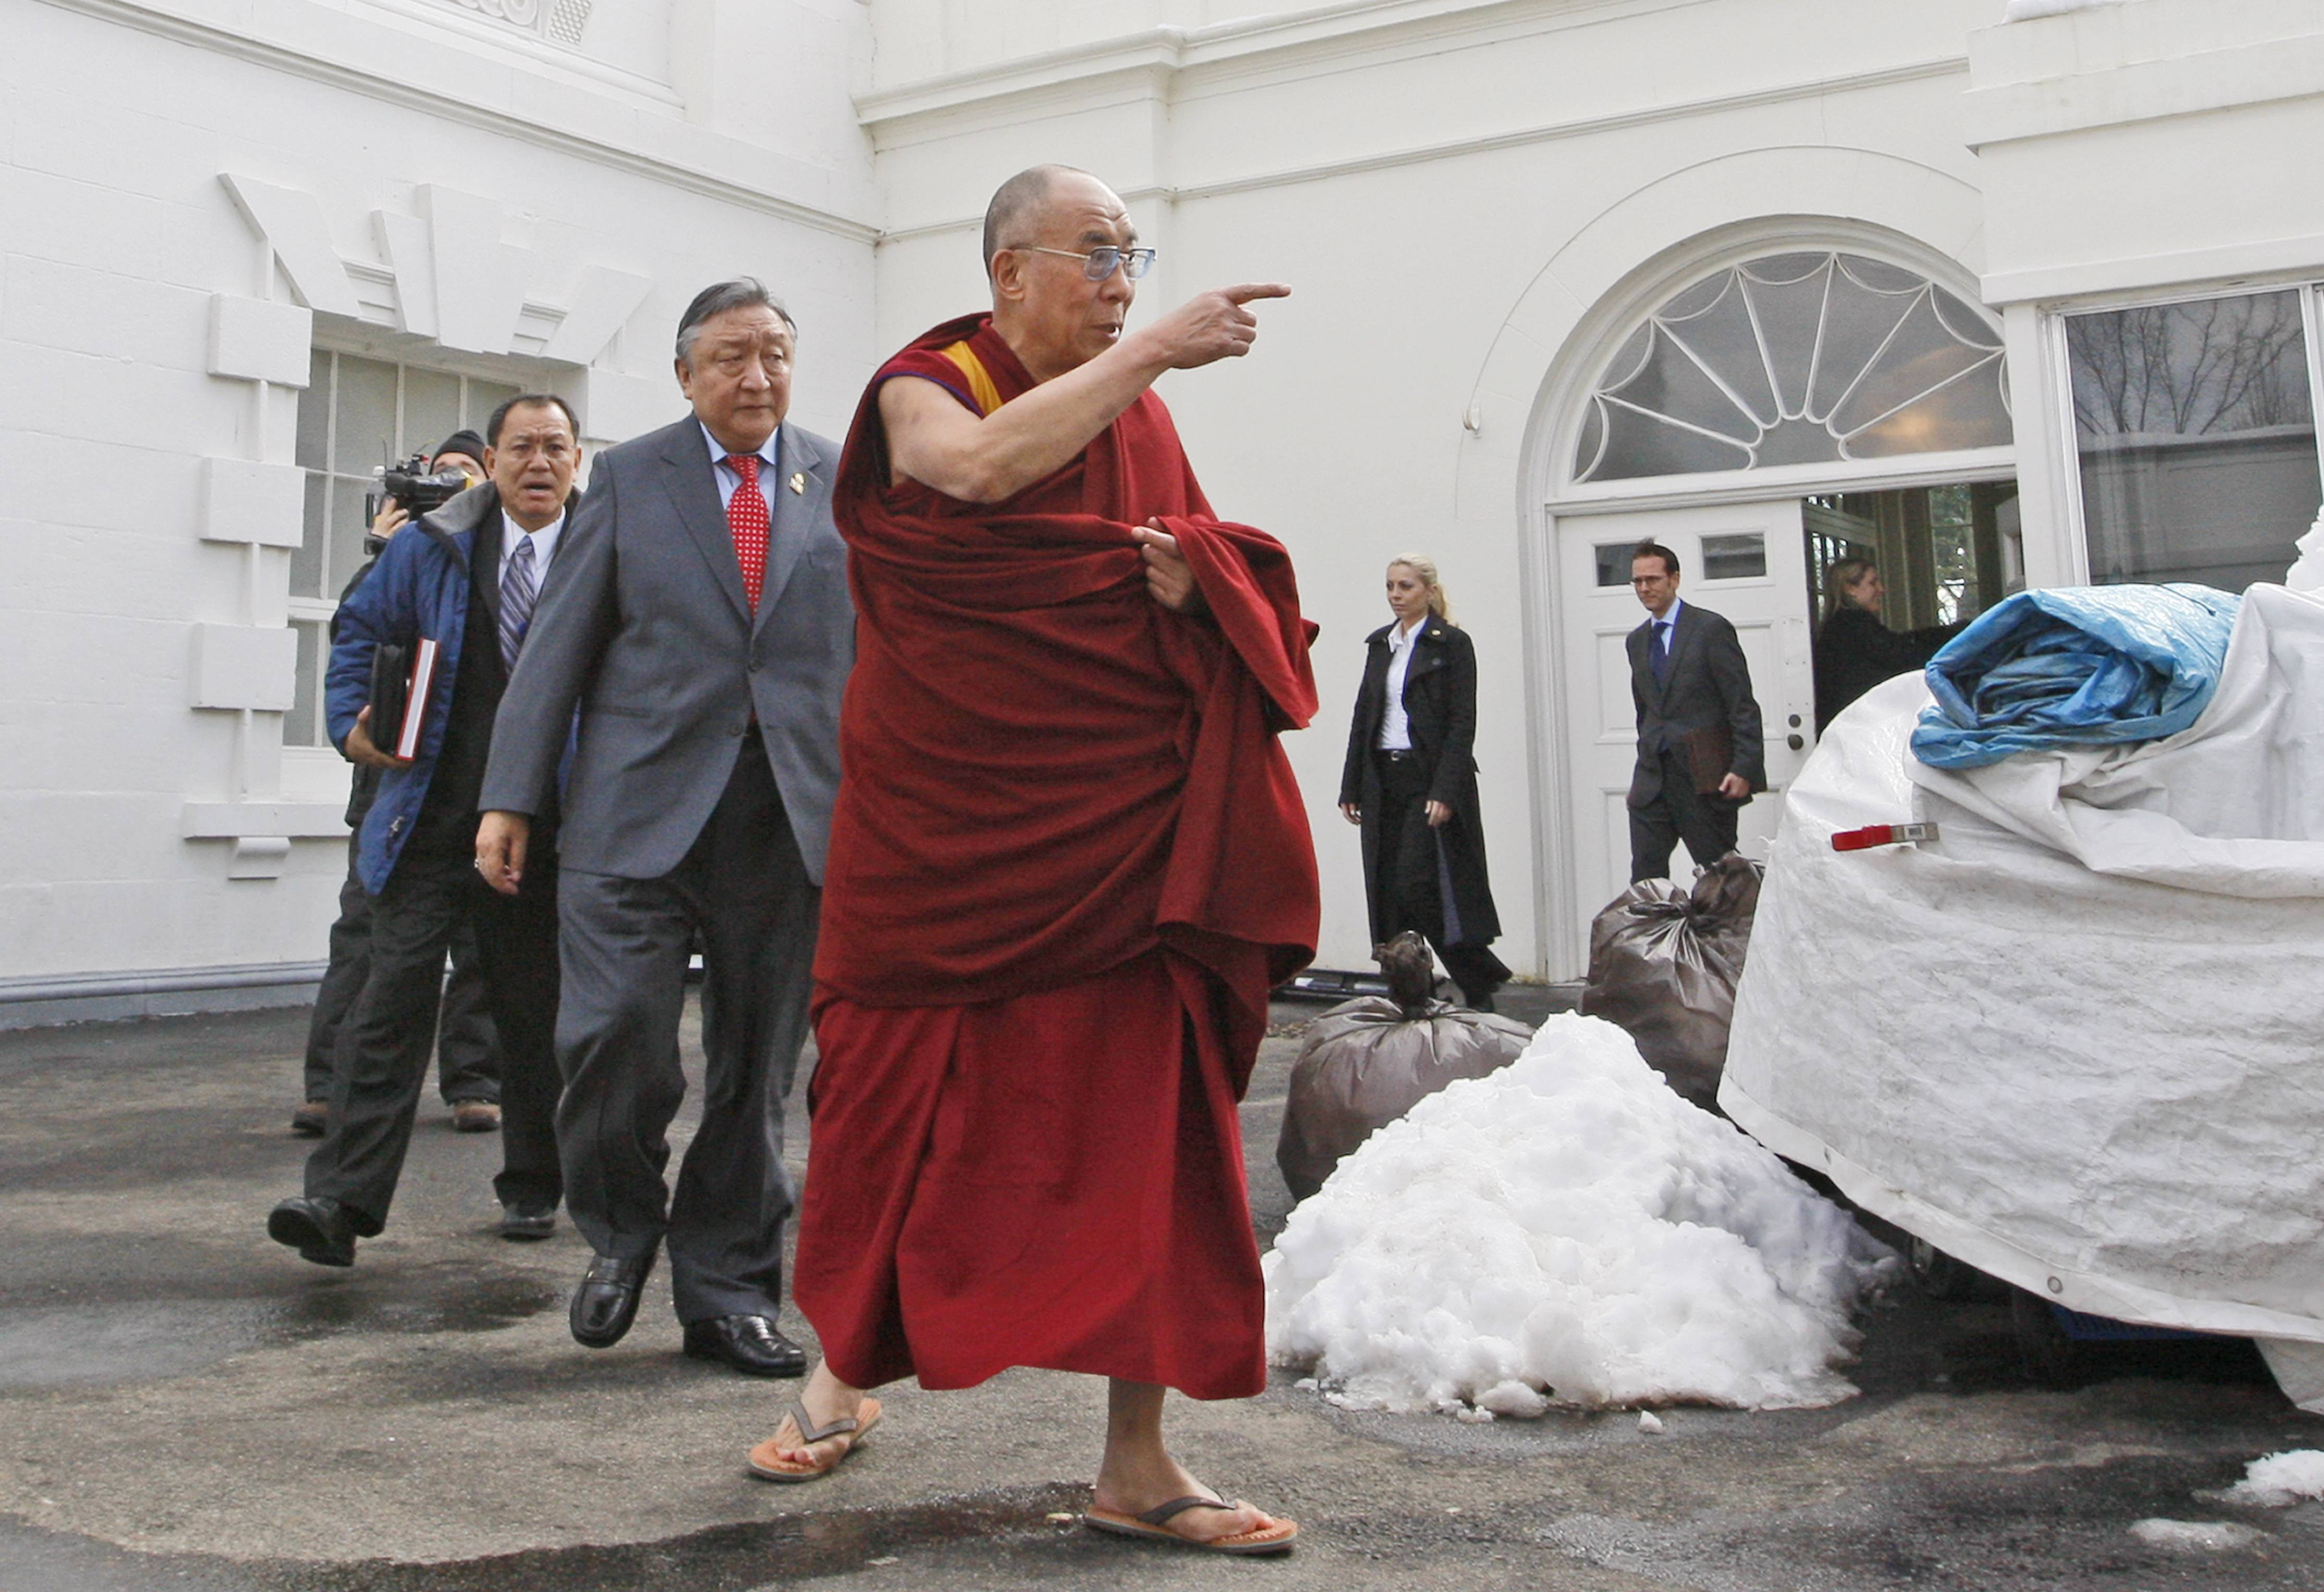 President Barack Obama will host Tibetan spiritual leader the Dalai Lama for a meeting on Feb. 21, 2014, the White House said, in a move that could rankle already tense relations between the U.S. and China.